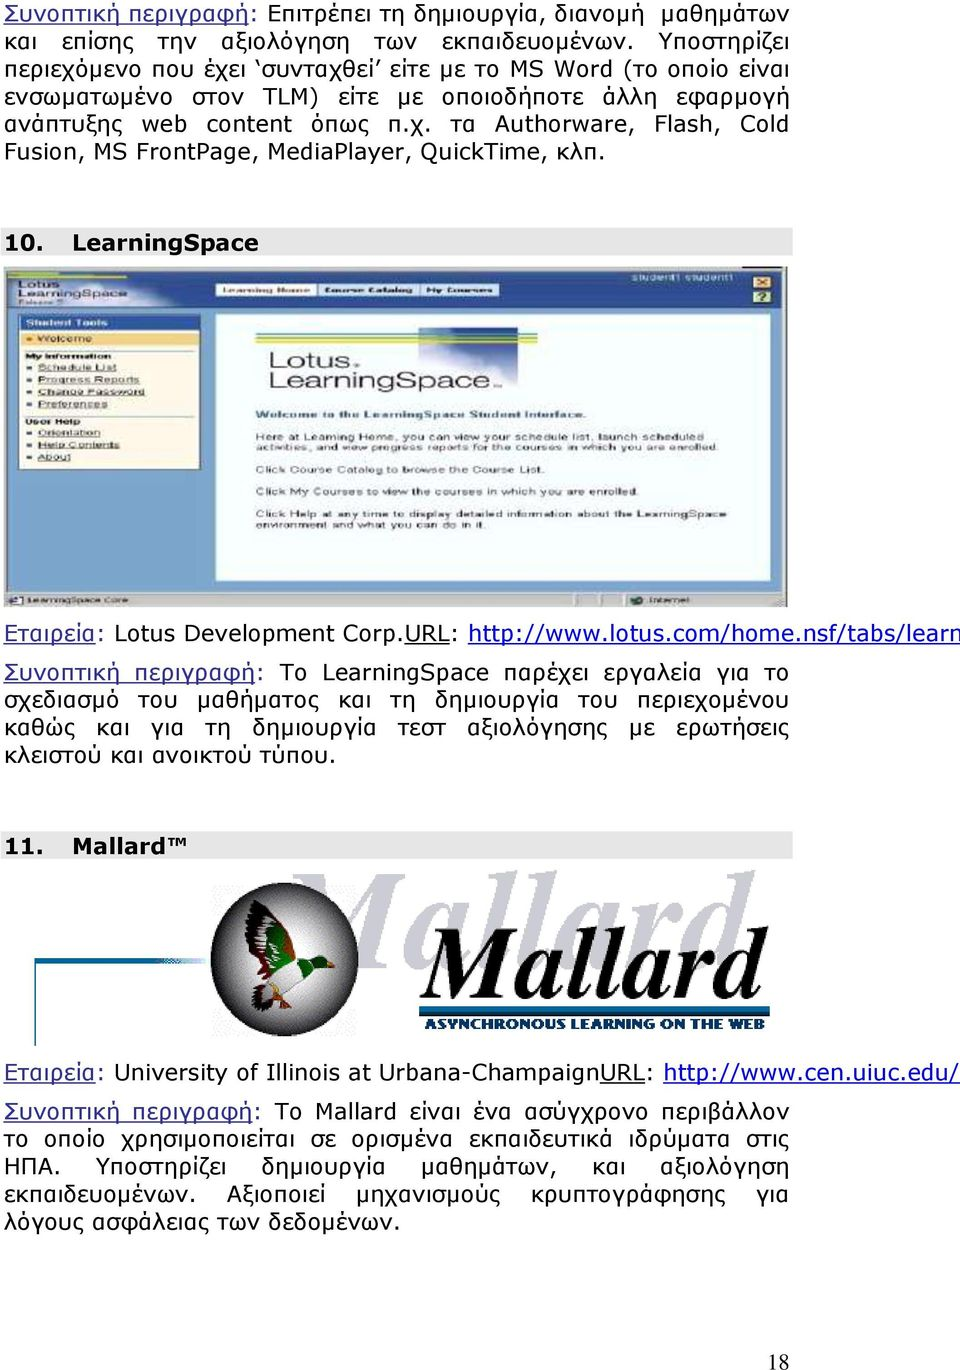 10. LearningSpace Εταιρεία: Lotus Development Corp.URL: http://www.lotus.com/home.